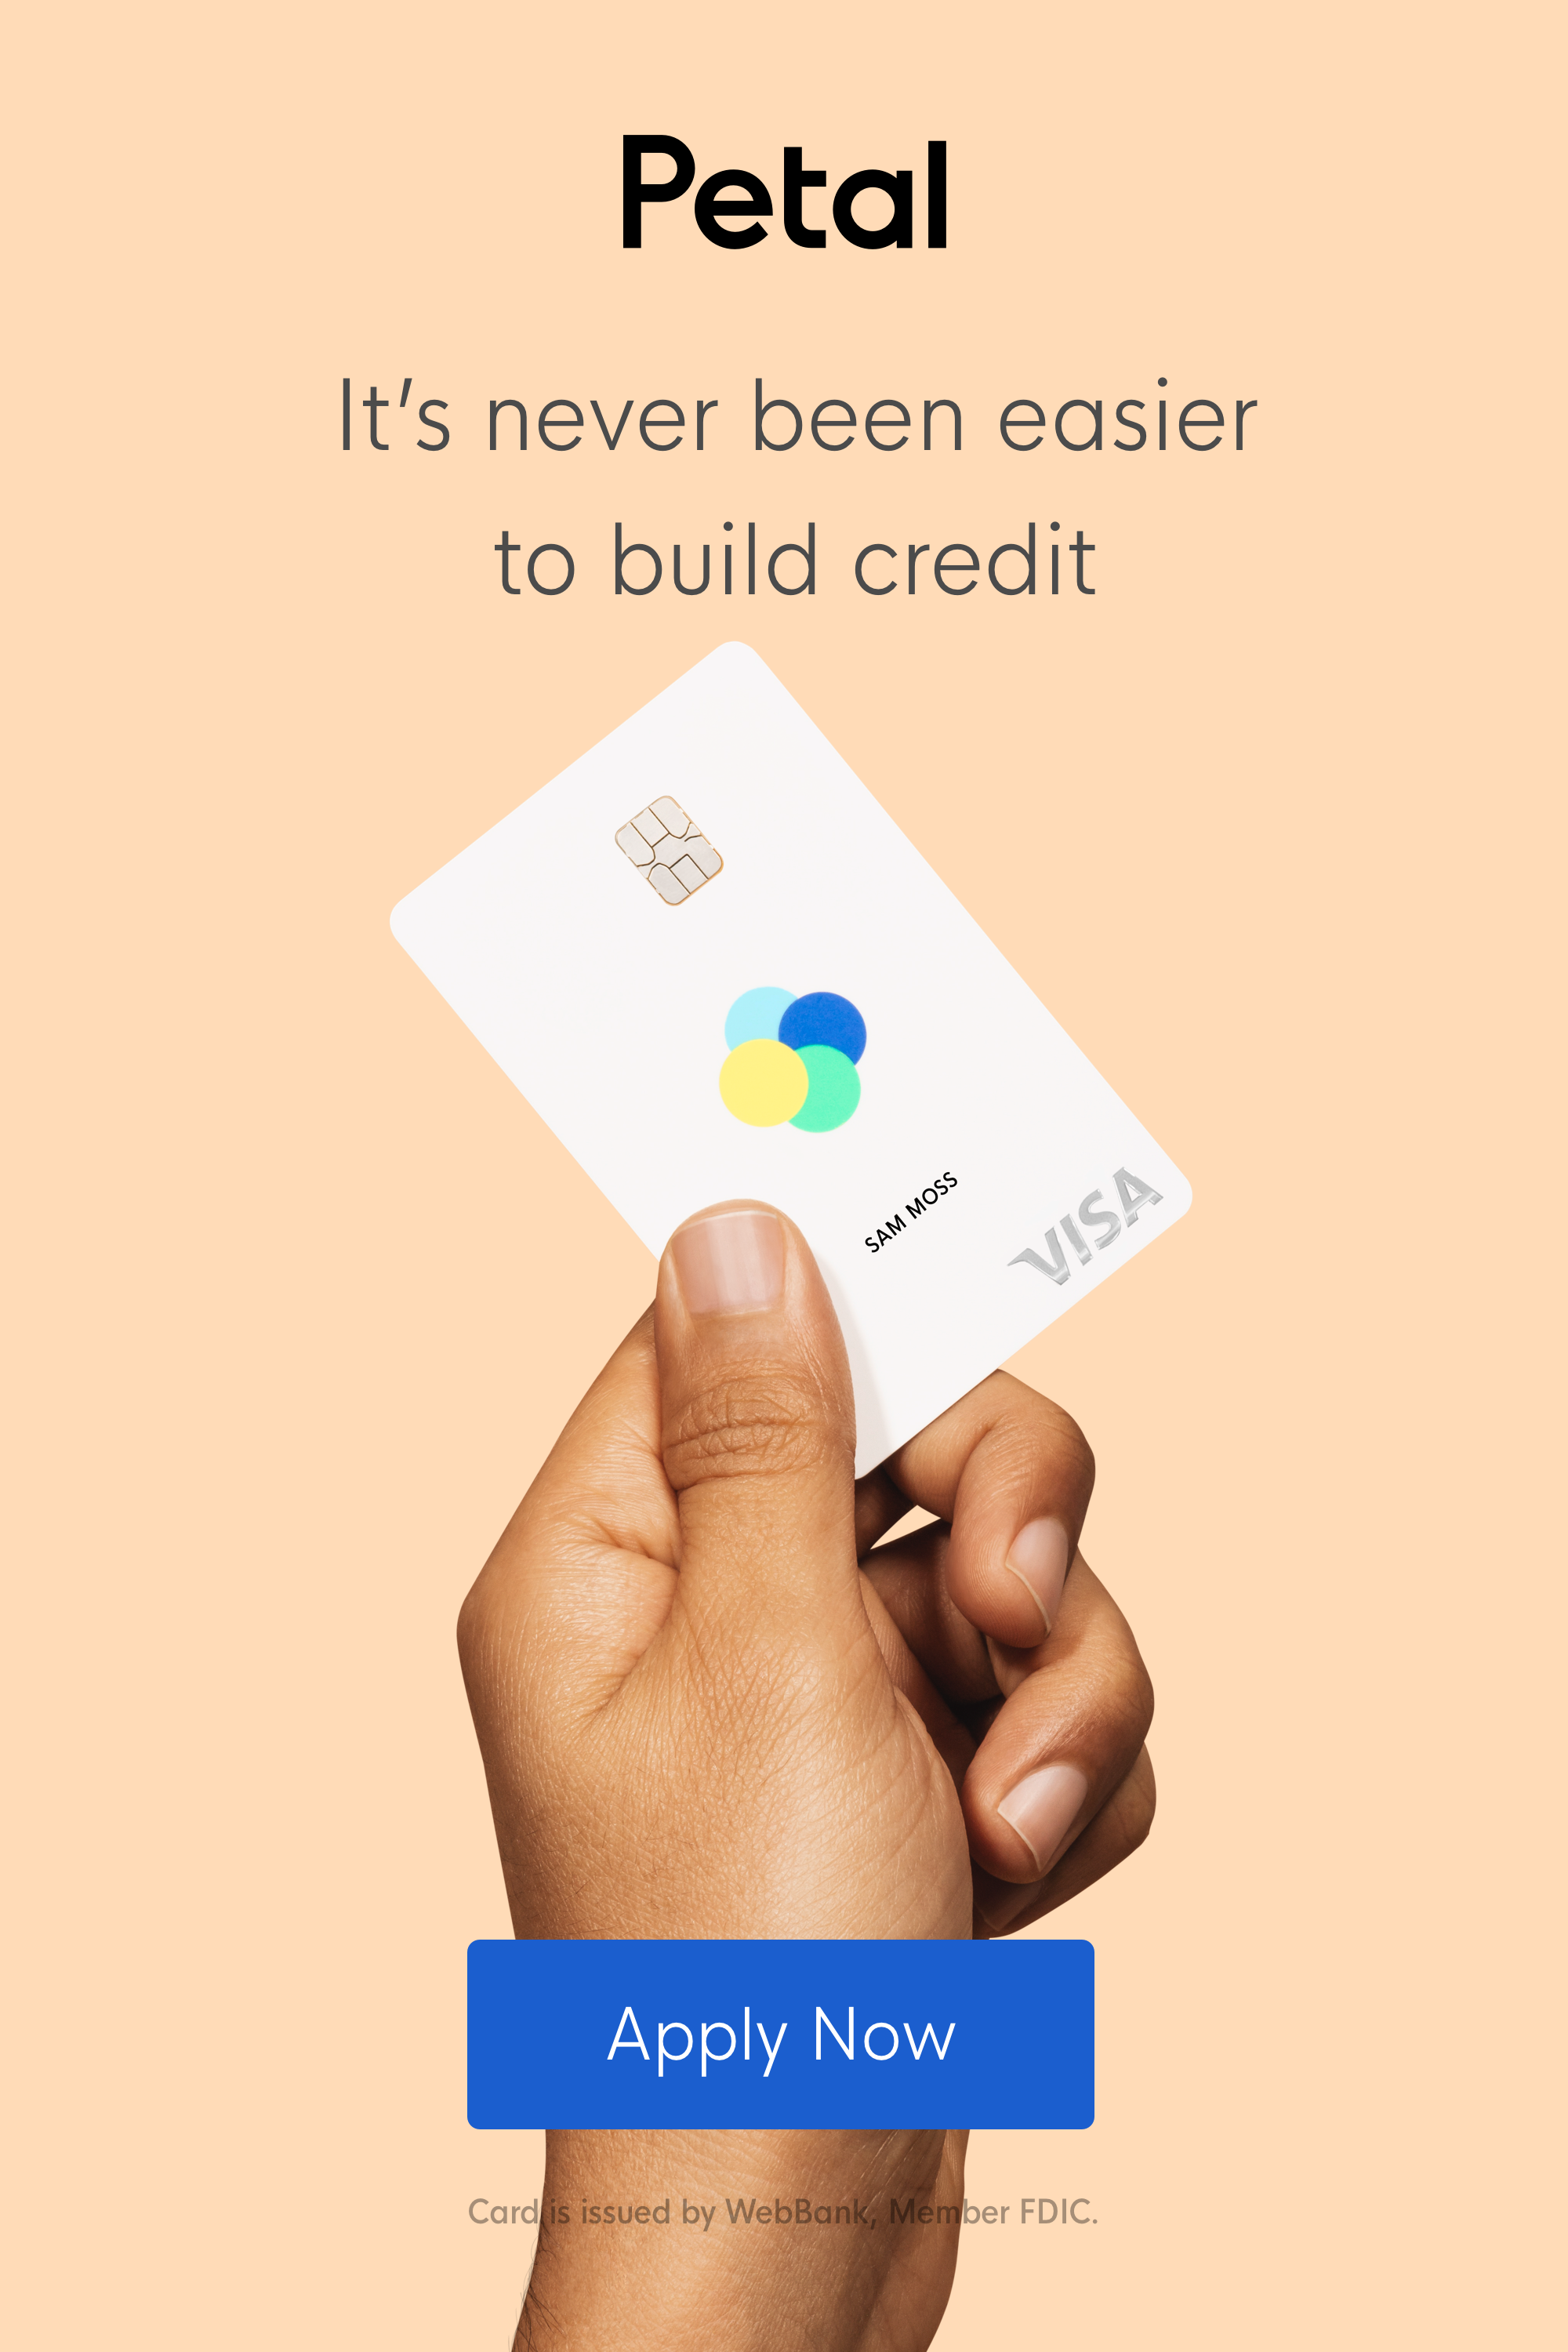 Petal Is The Perfect Credit Card For Anyone Looking For An Easier Way To Build Credit Credit Limits Range From Credit Card Design Credit Card App Build Credit